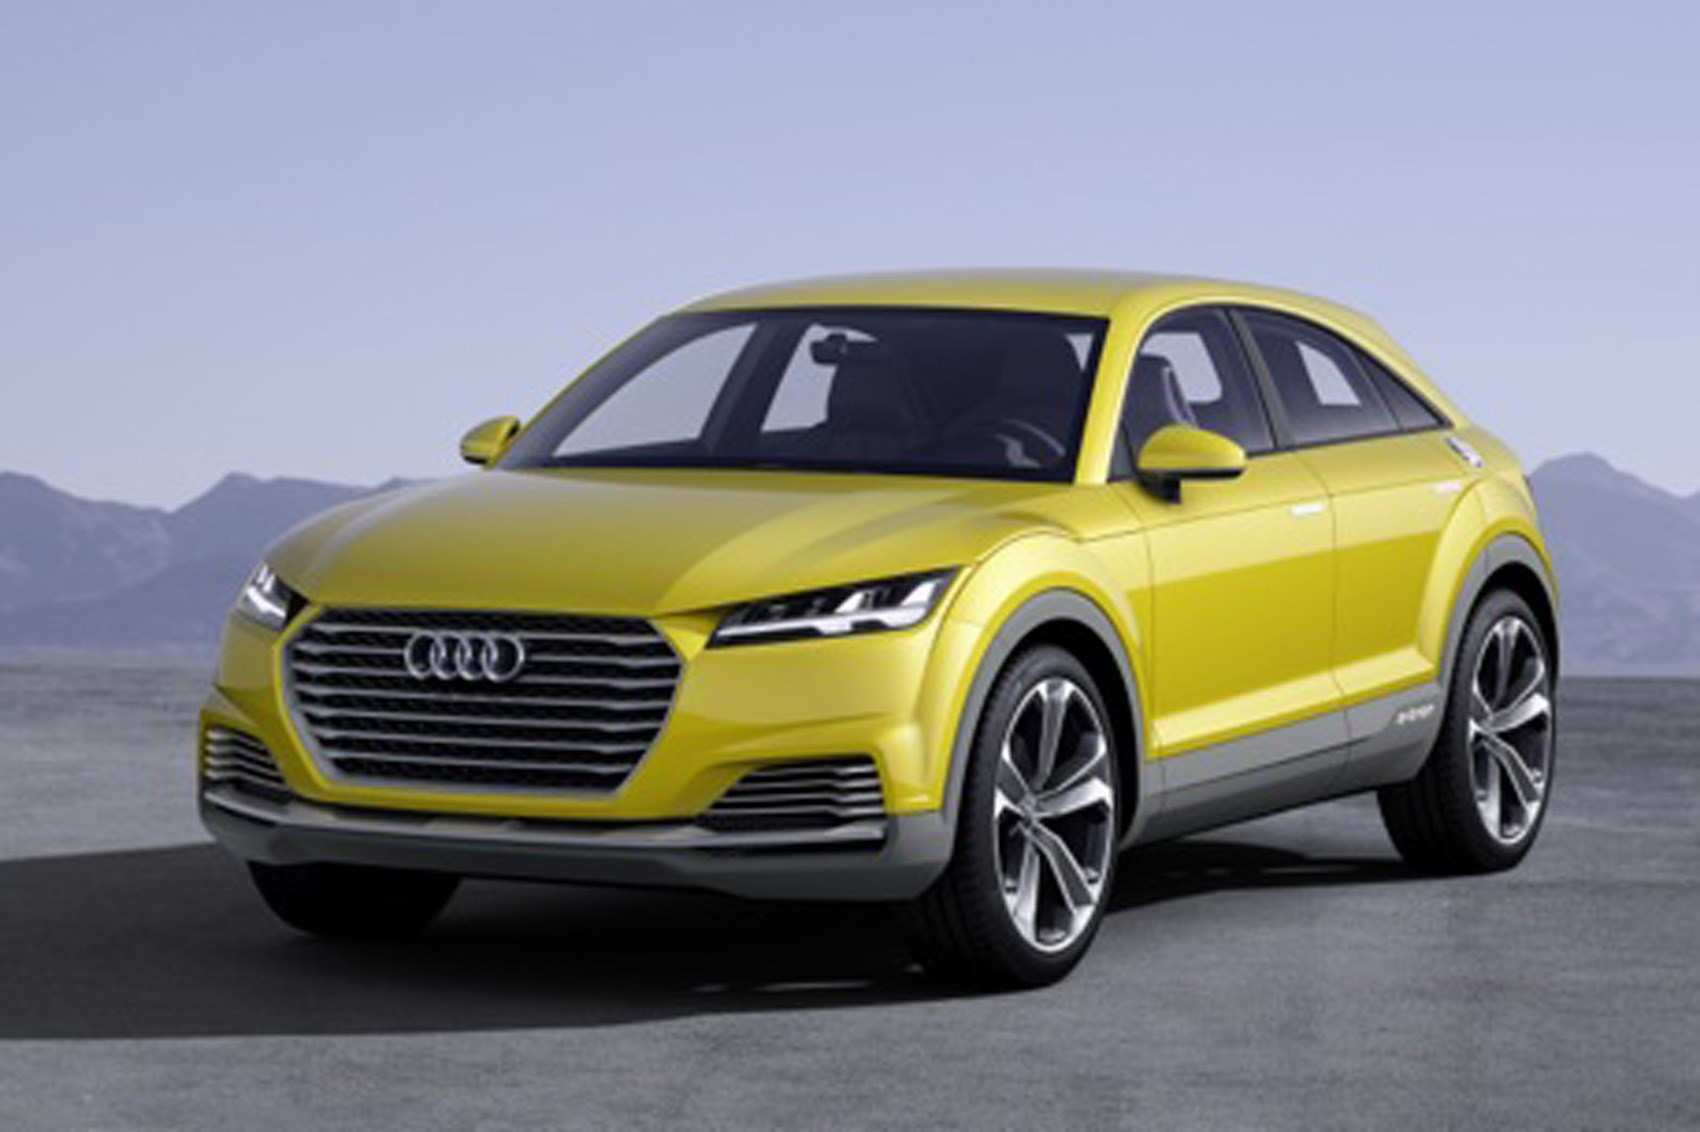 50 All New Audi Mpv 2019 Redesign Images with Audi Mpv 2019 Redesign